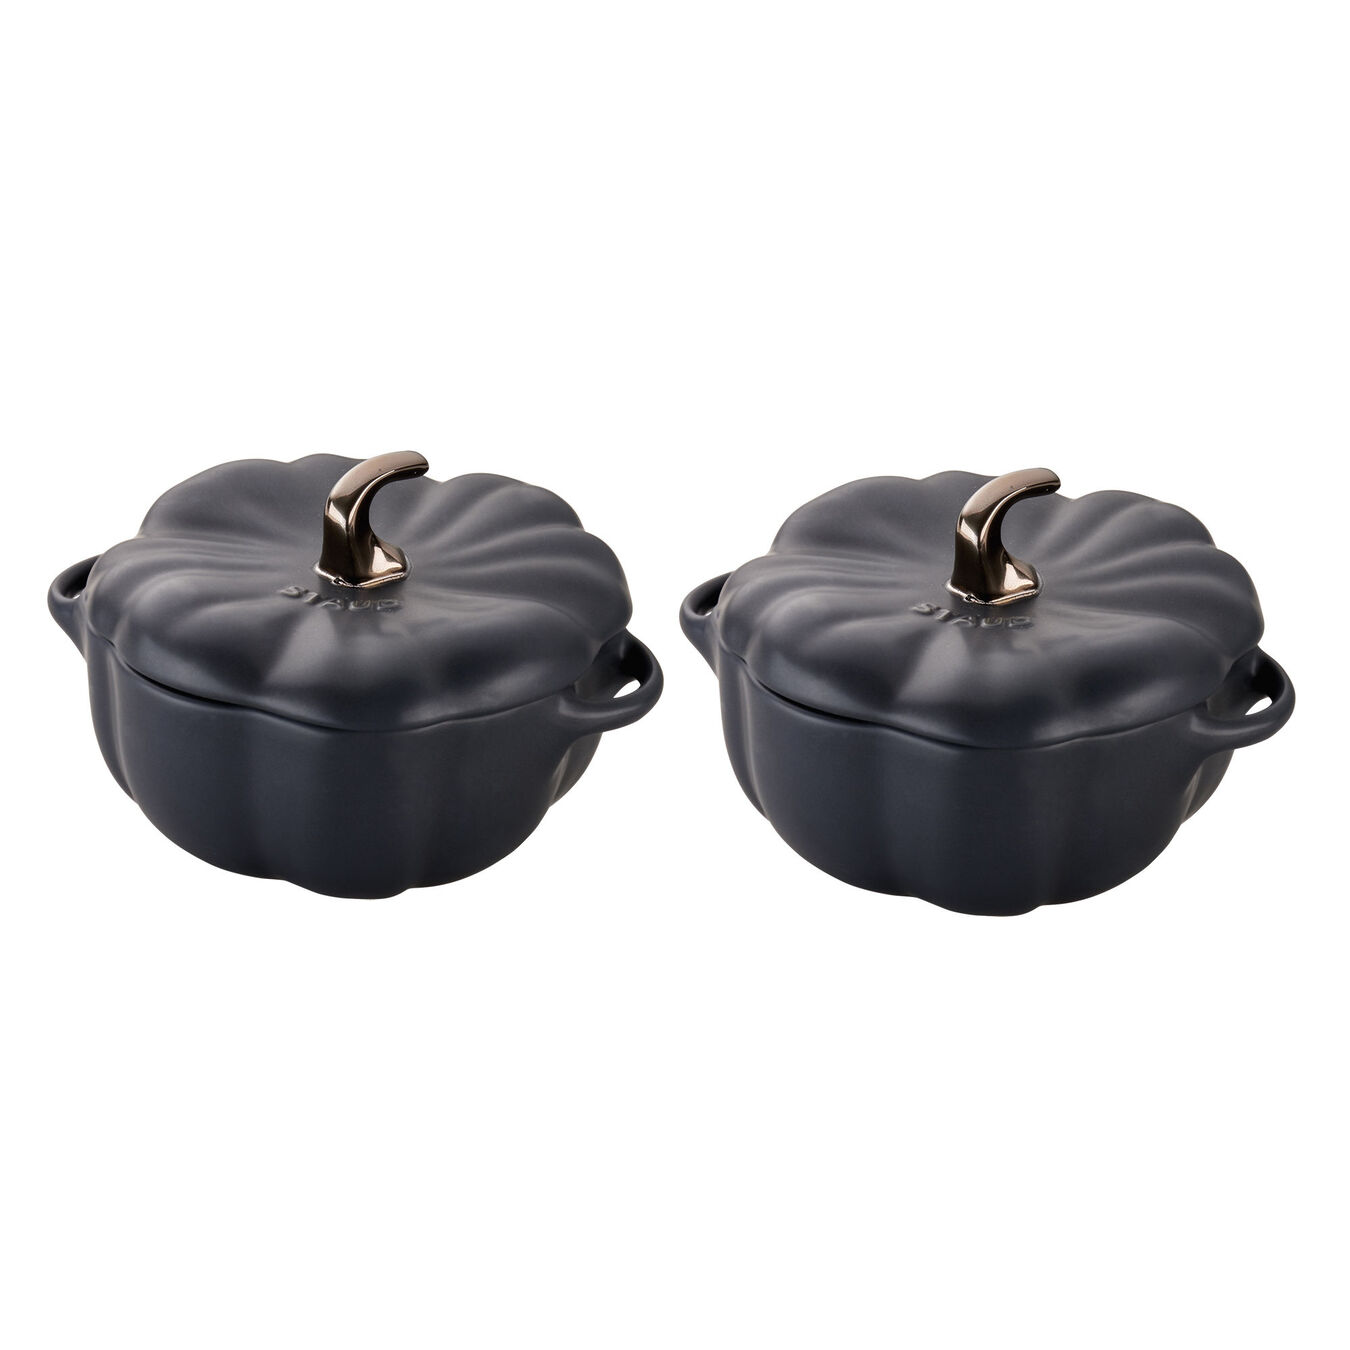 2-pc 16-oz Petite Pumpkin Cocotte Set - Matte Black,,large 1